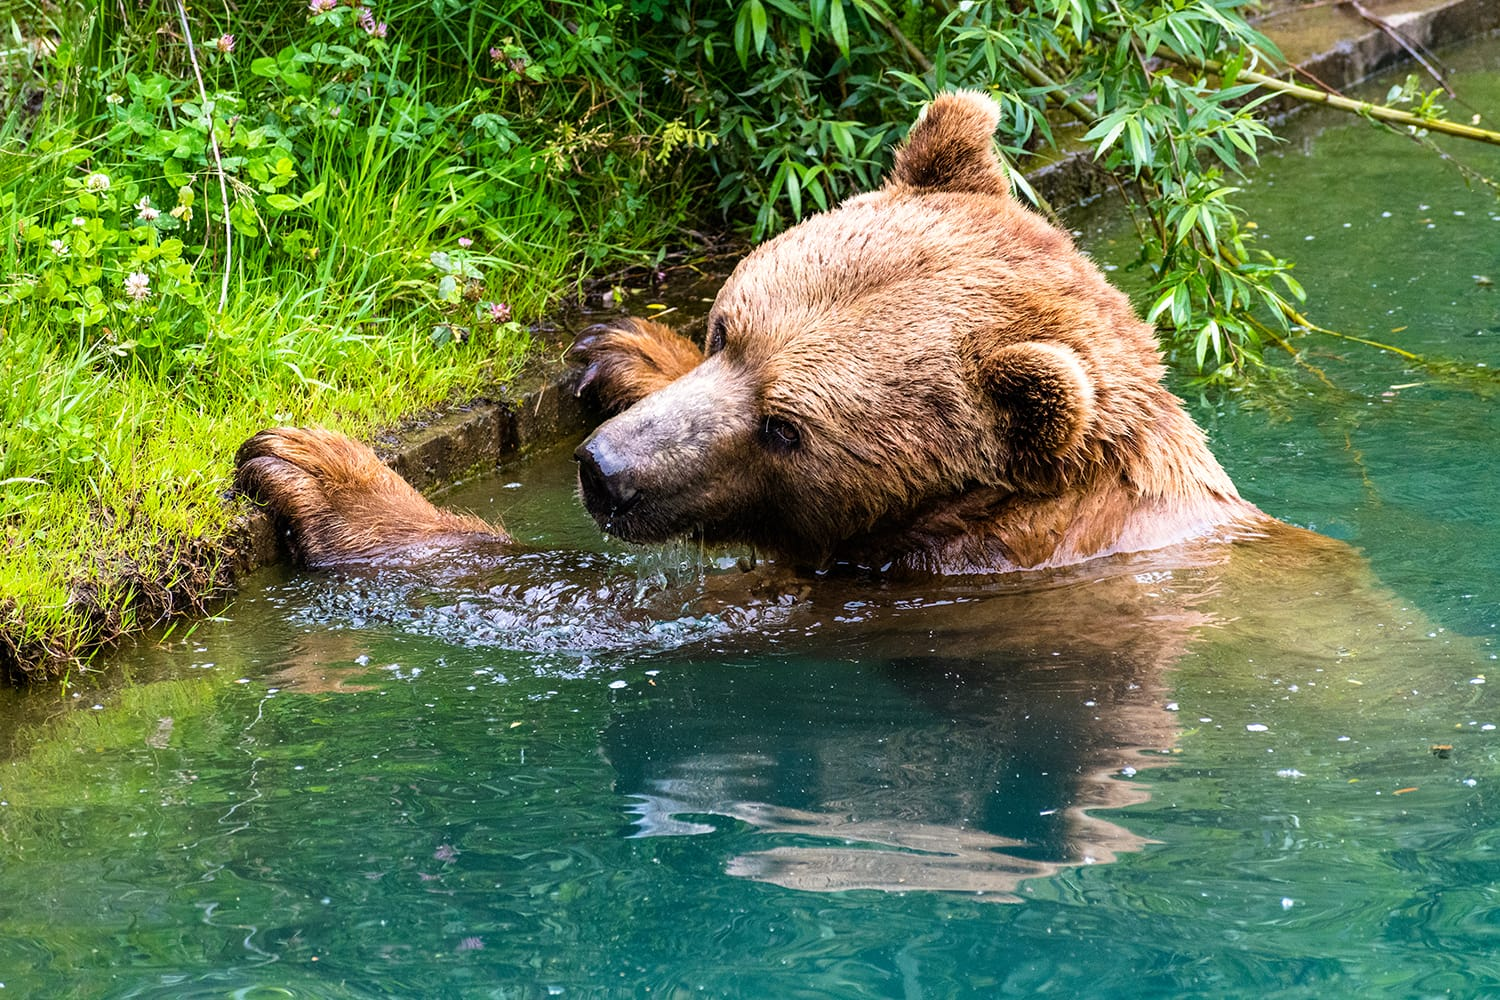 A bear swimming inside Bear Pit in Bern, Switzerland.